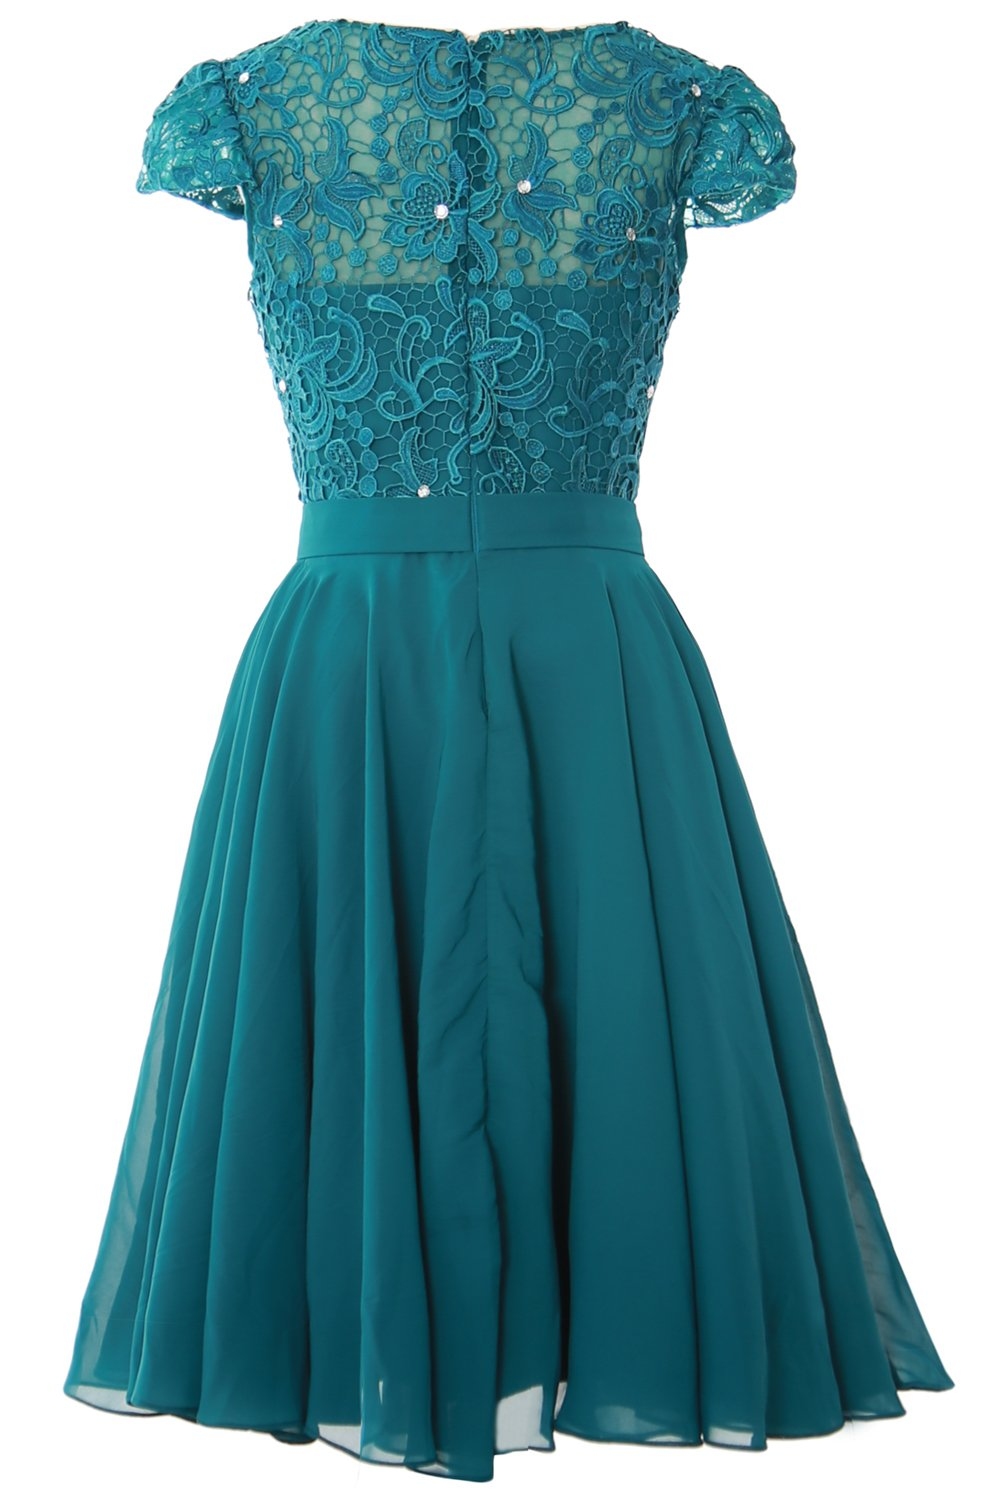 MACloth Women Cap Sleeve Mother of The Bride Dress Lace Short Formal Party Gown (24w, Amethyst) by MACloth (Image #2)